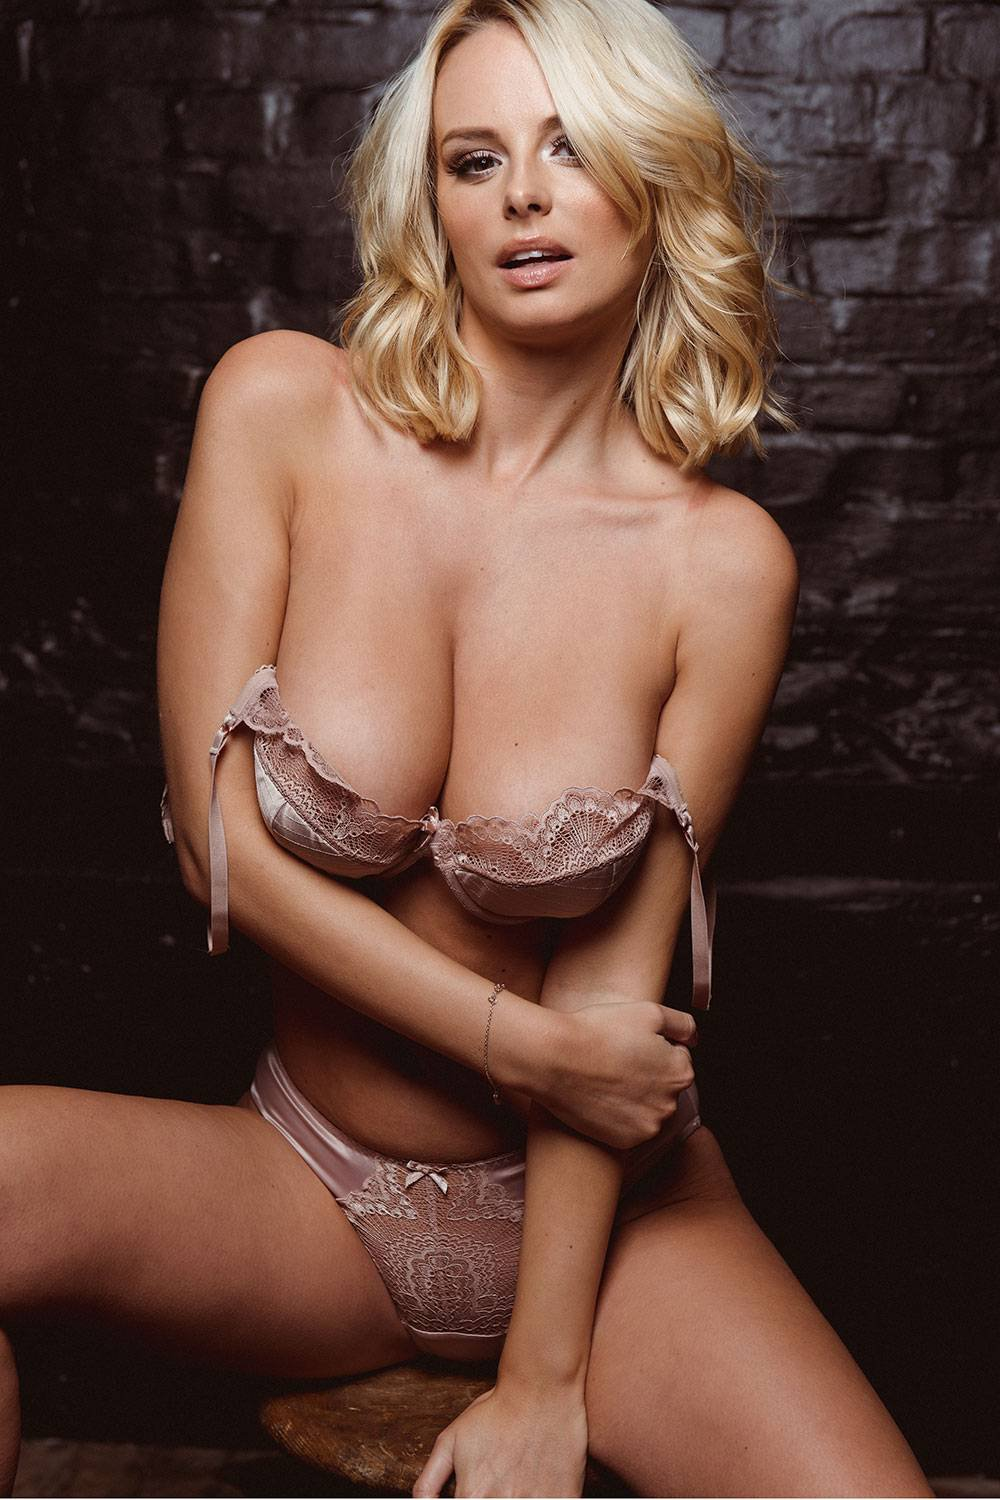 Erotica Rhian Sugden nudes (82 photo), Pussy, Paparazzi, Twitter, cleavage 2006